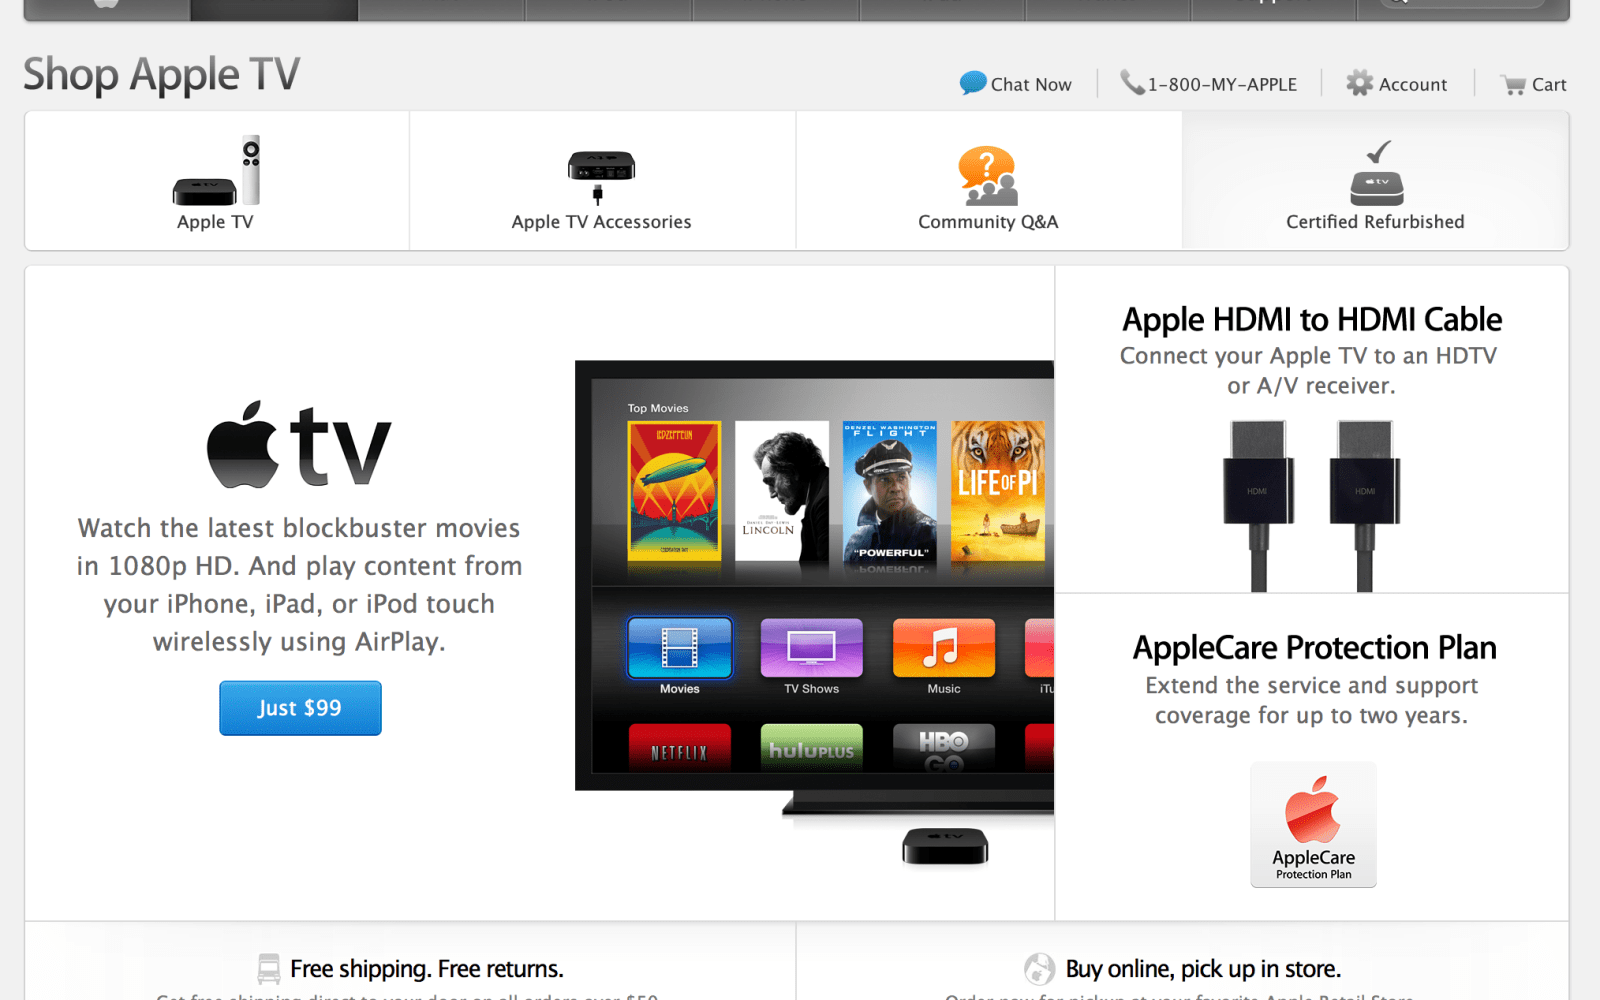 Apple TV graduates from hobby/accessory to product line